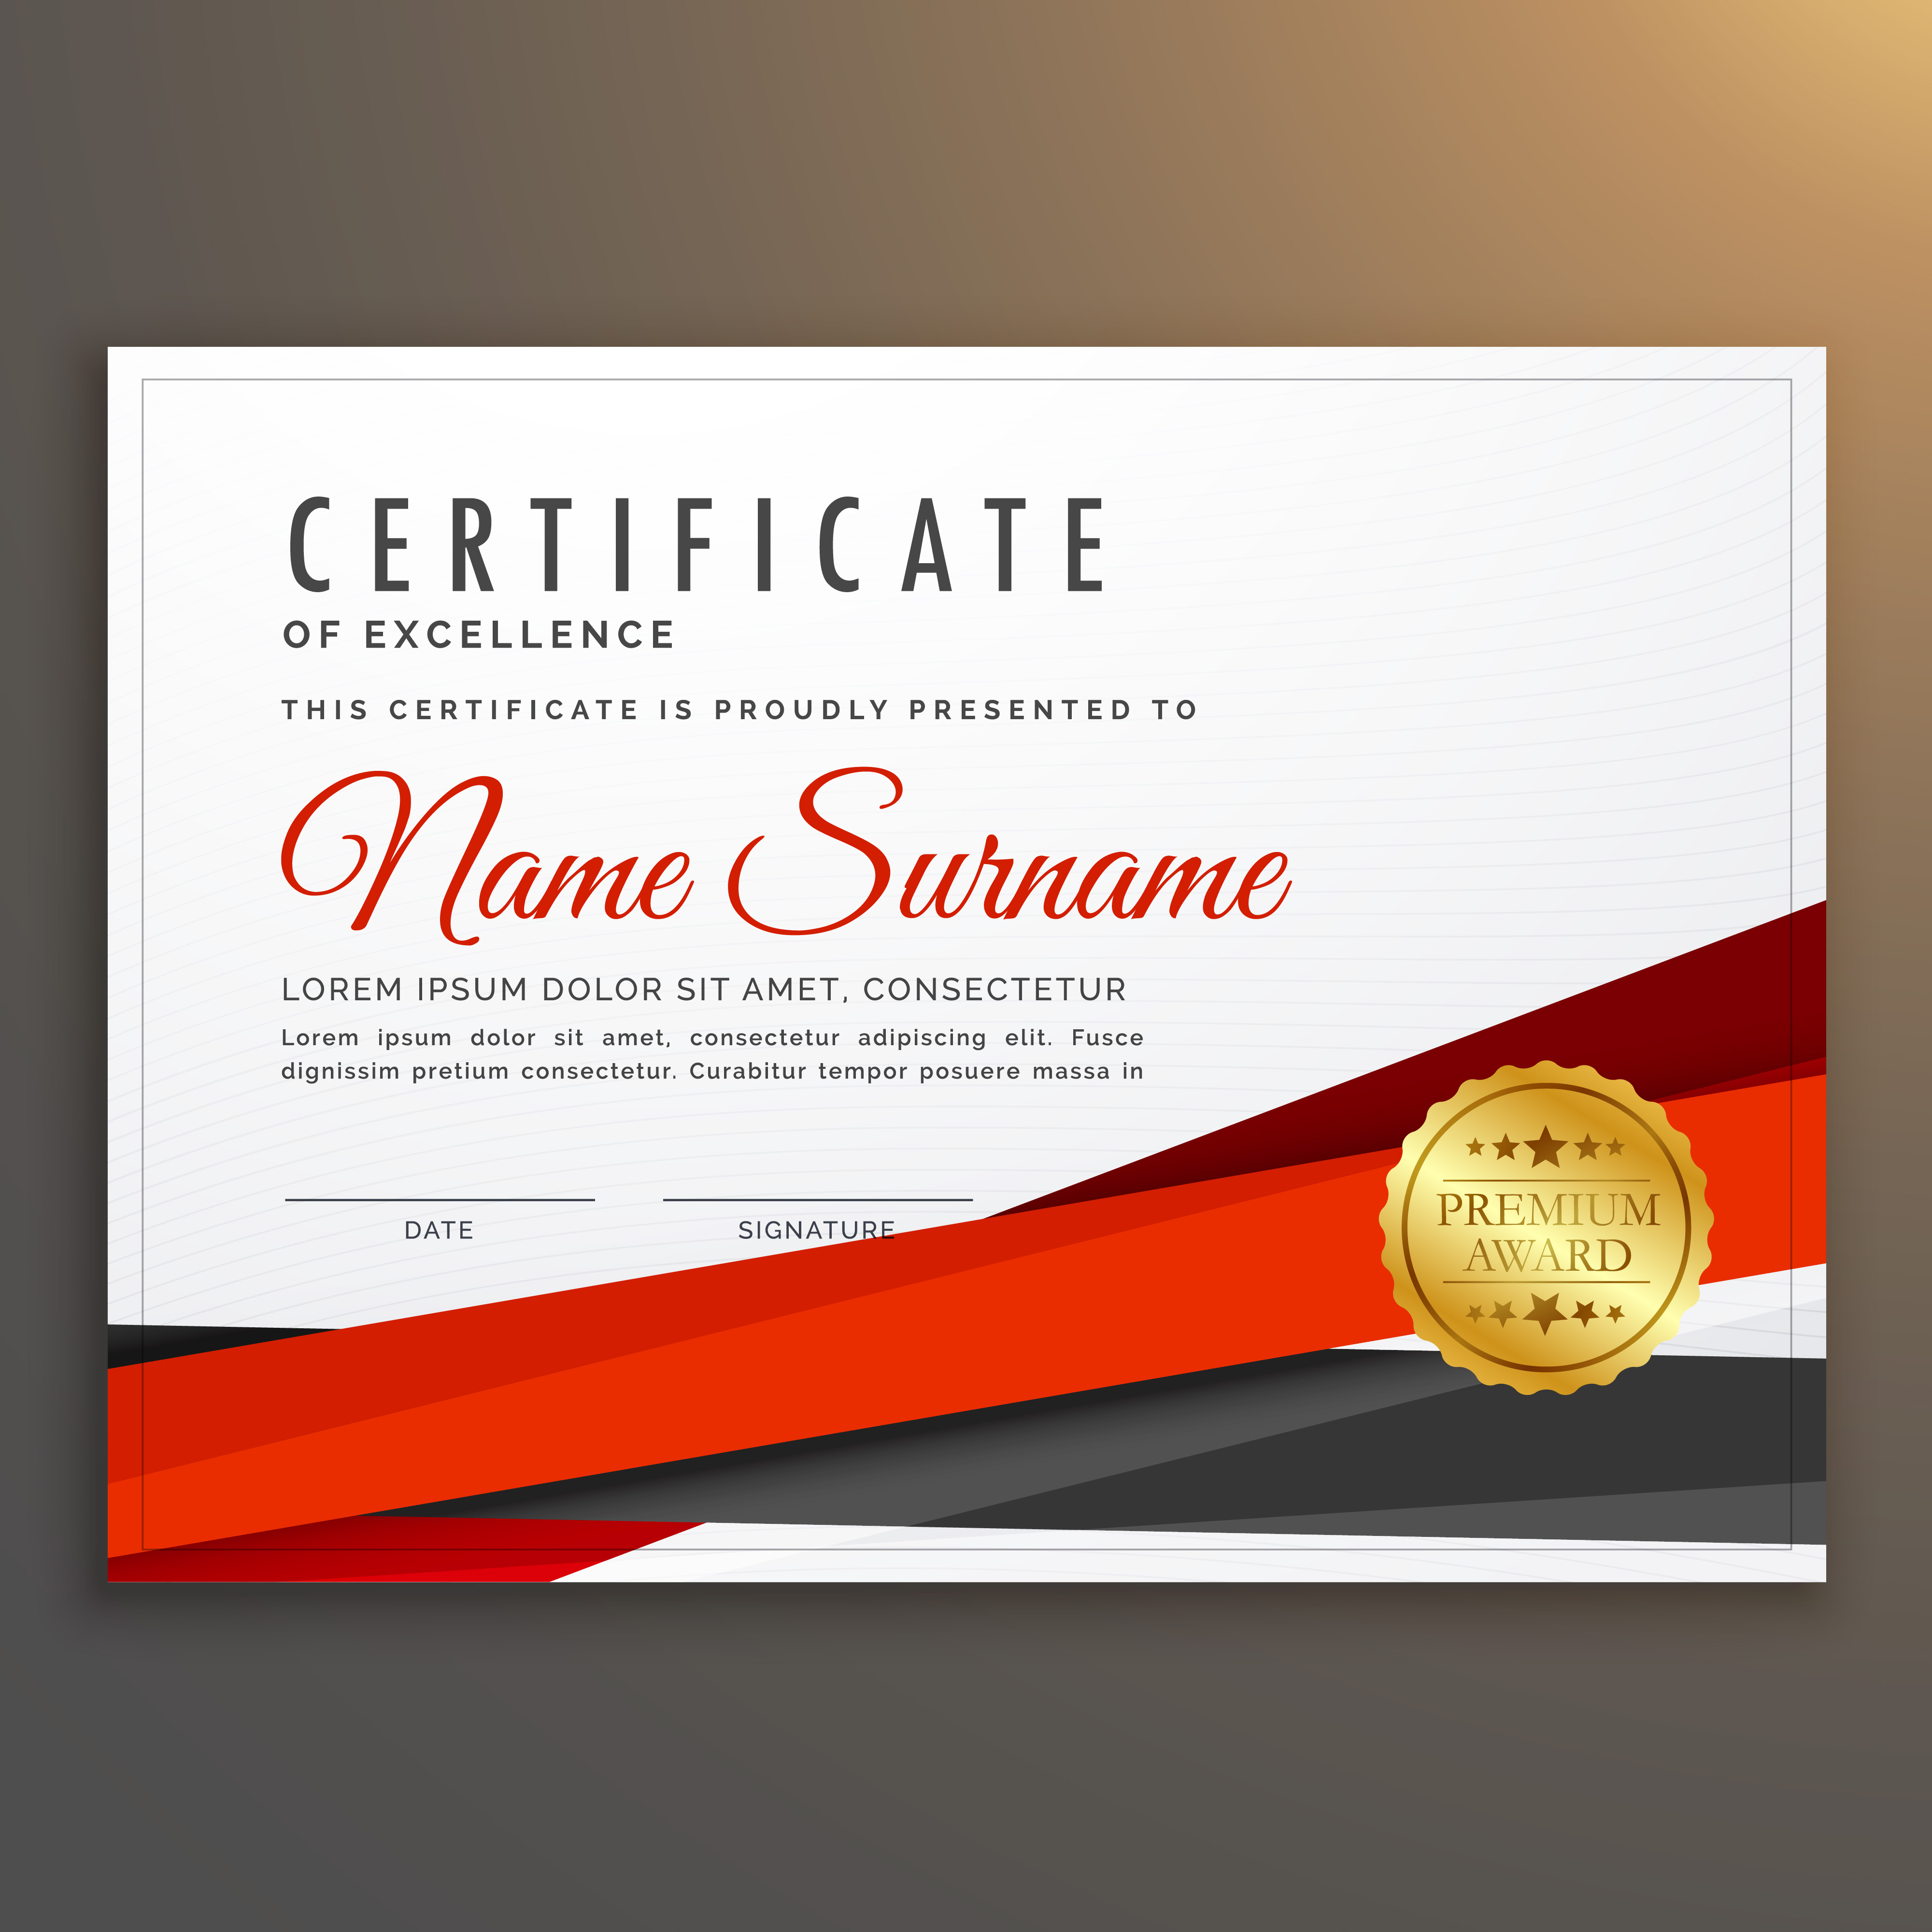 clean modern certificate of excellence design with red